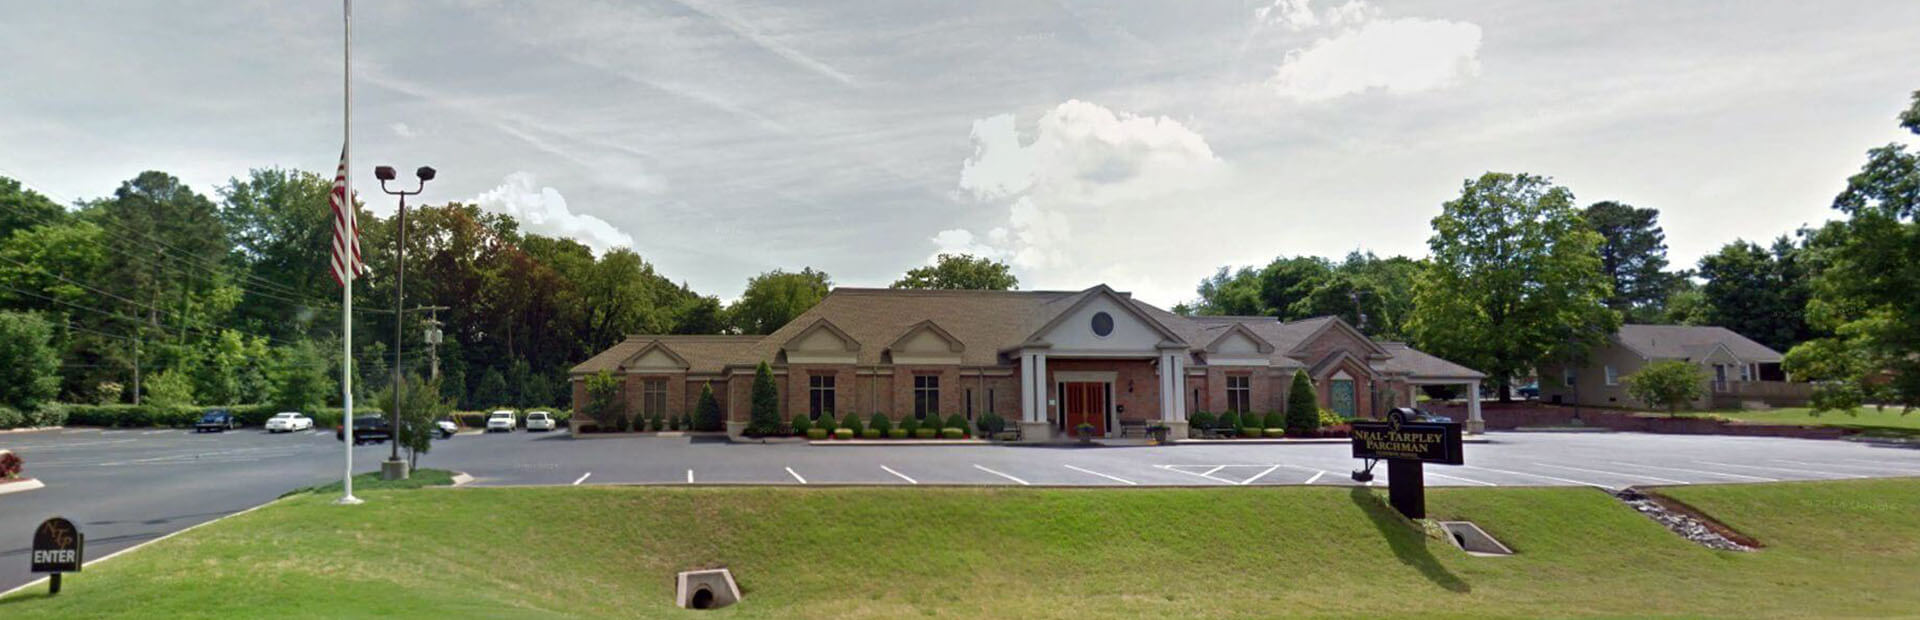 Neal-Tarpley-Parchman Funeral Home in Clarksville, TN